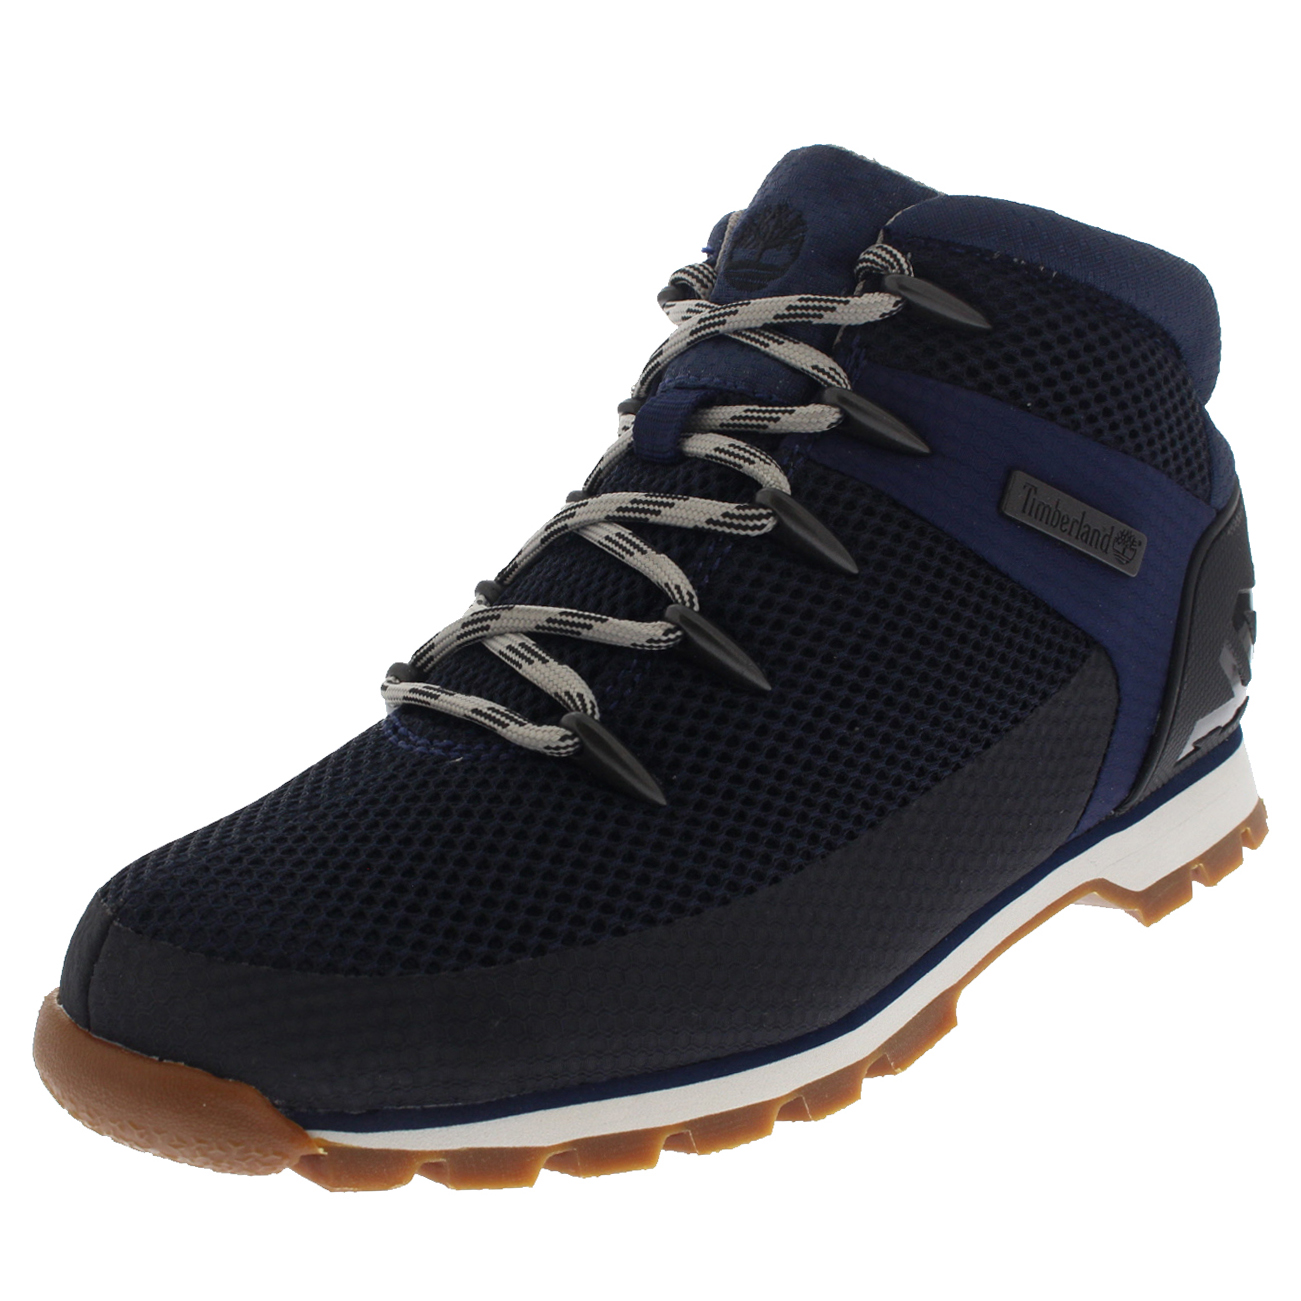 Mens Timberland Euro Sprint Fabric Hiking Durable Walking